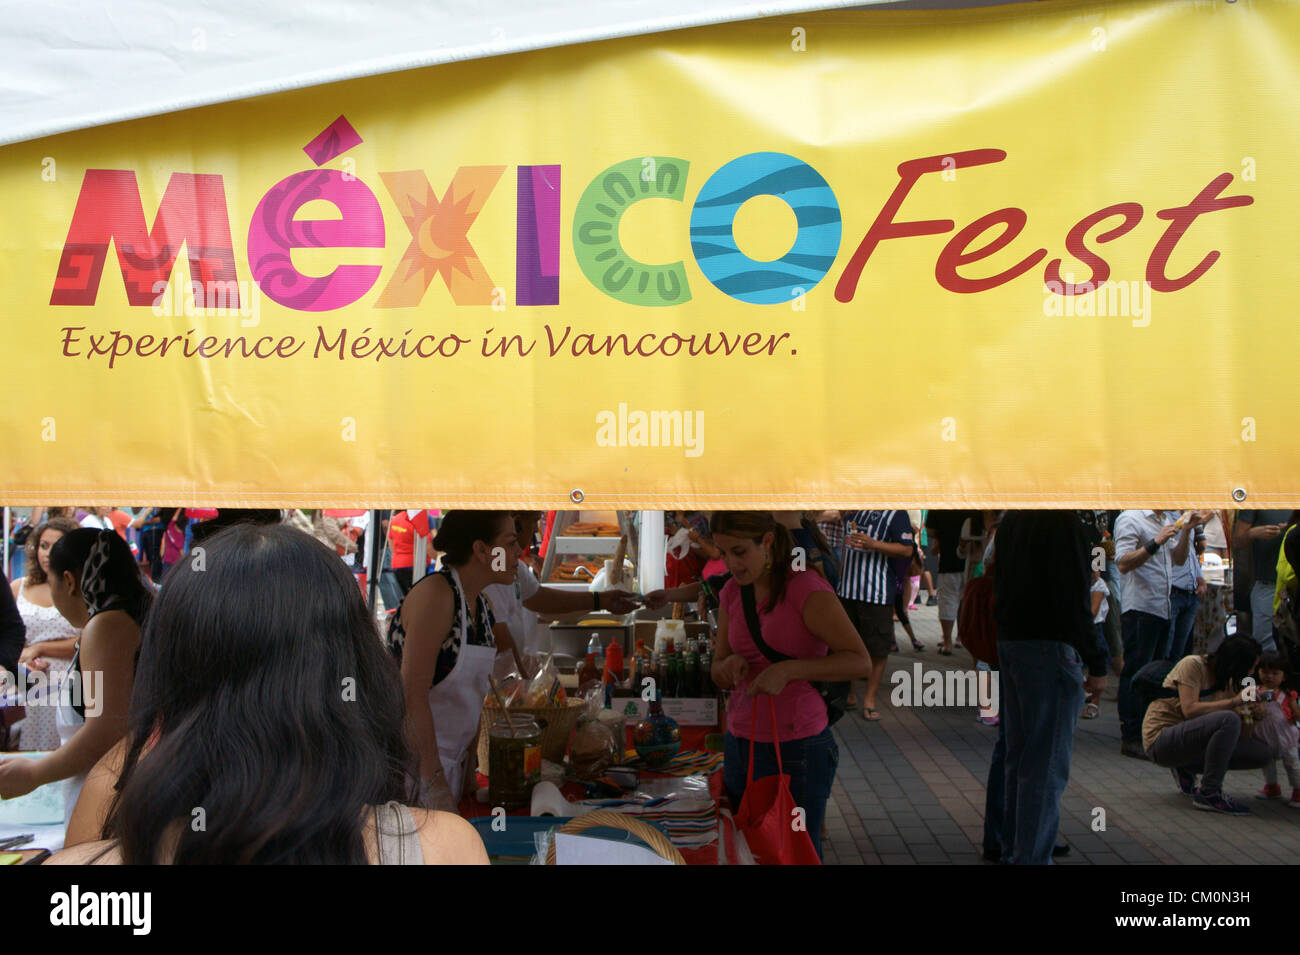 Sign at the Mexico Fest Mexican independence day celebrations in Vancouver, British Columbia, Canada - Stock Image